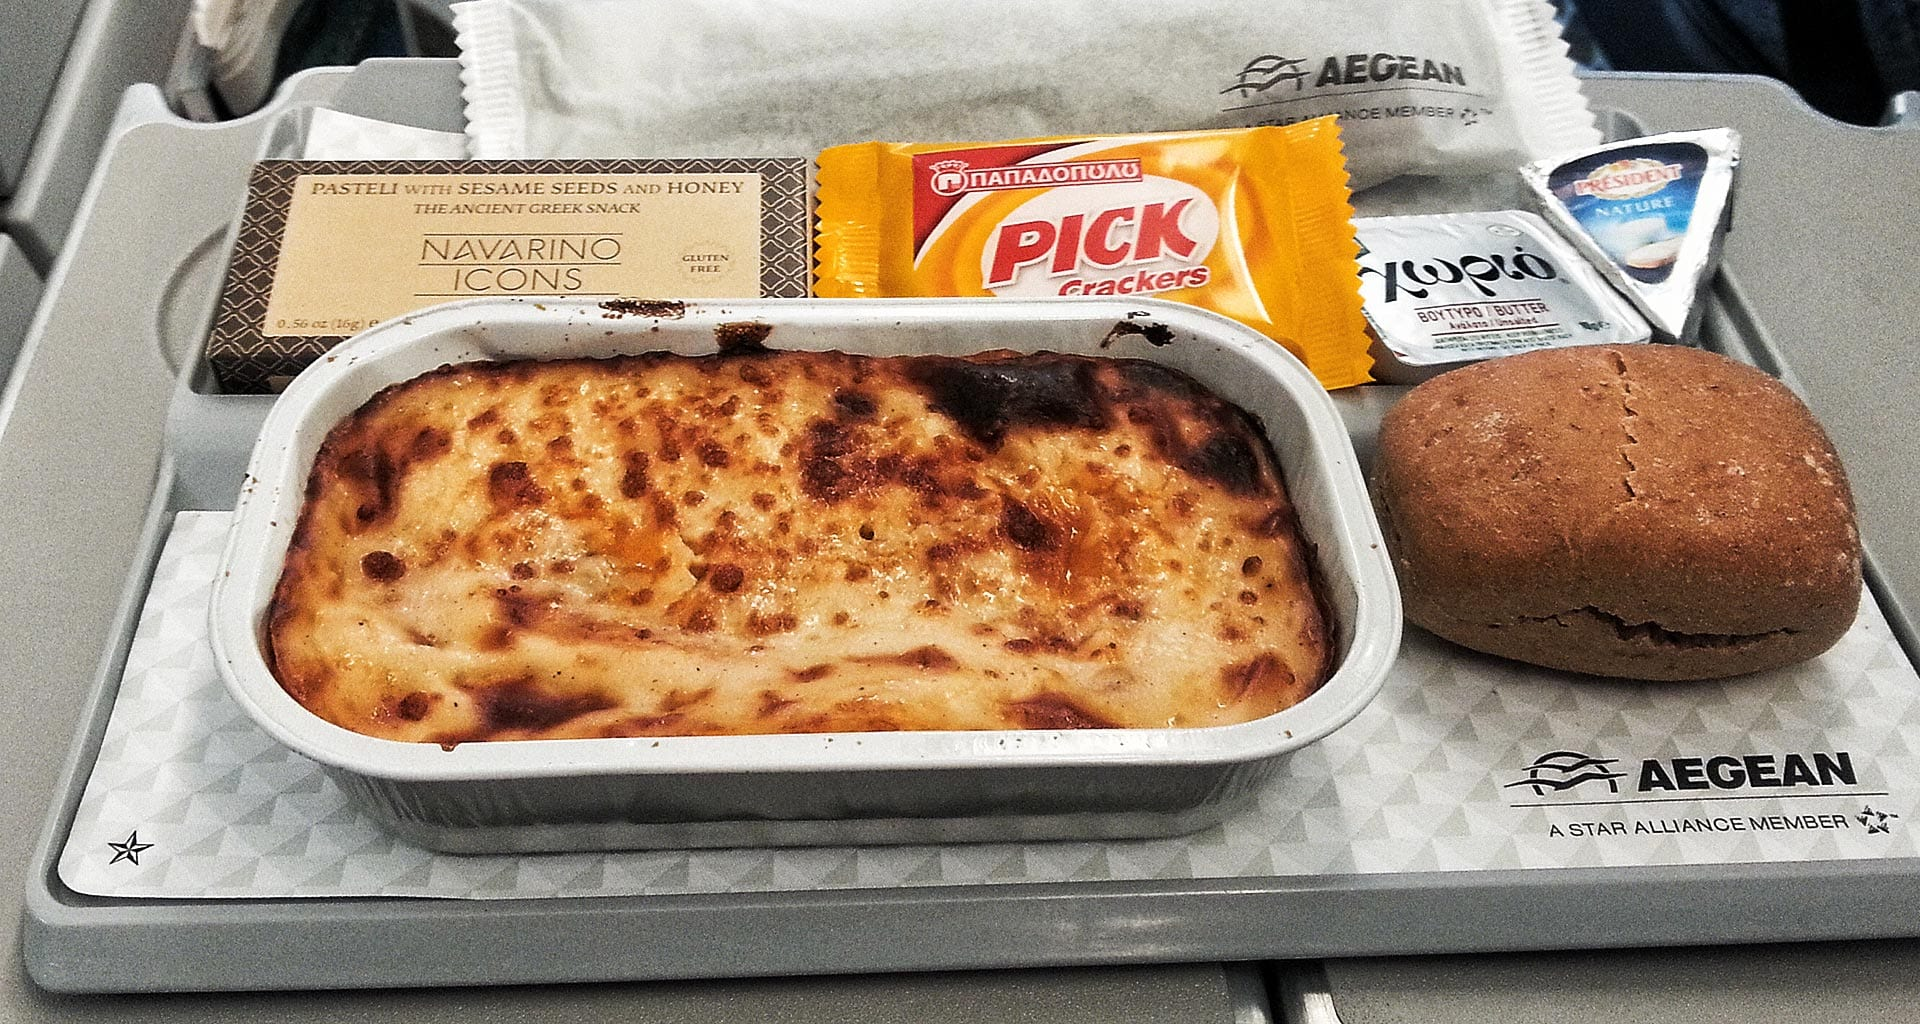 Aegean Airlines economy class meals